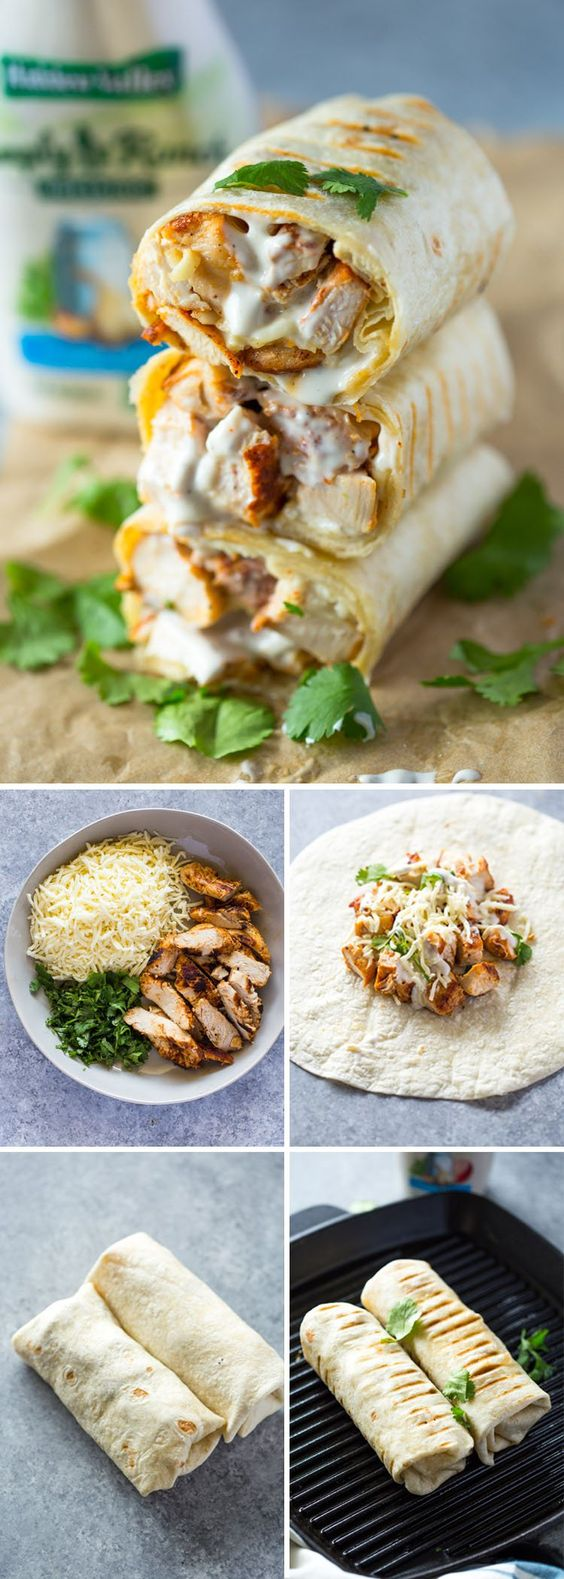 CHICKEN RANCH WRAPS #chicken #chickenrecipes #chickenranchwraps #lunchideas #lunchrecipes